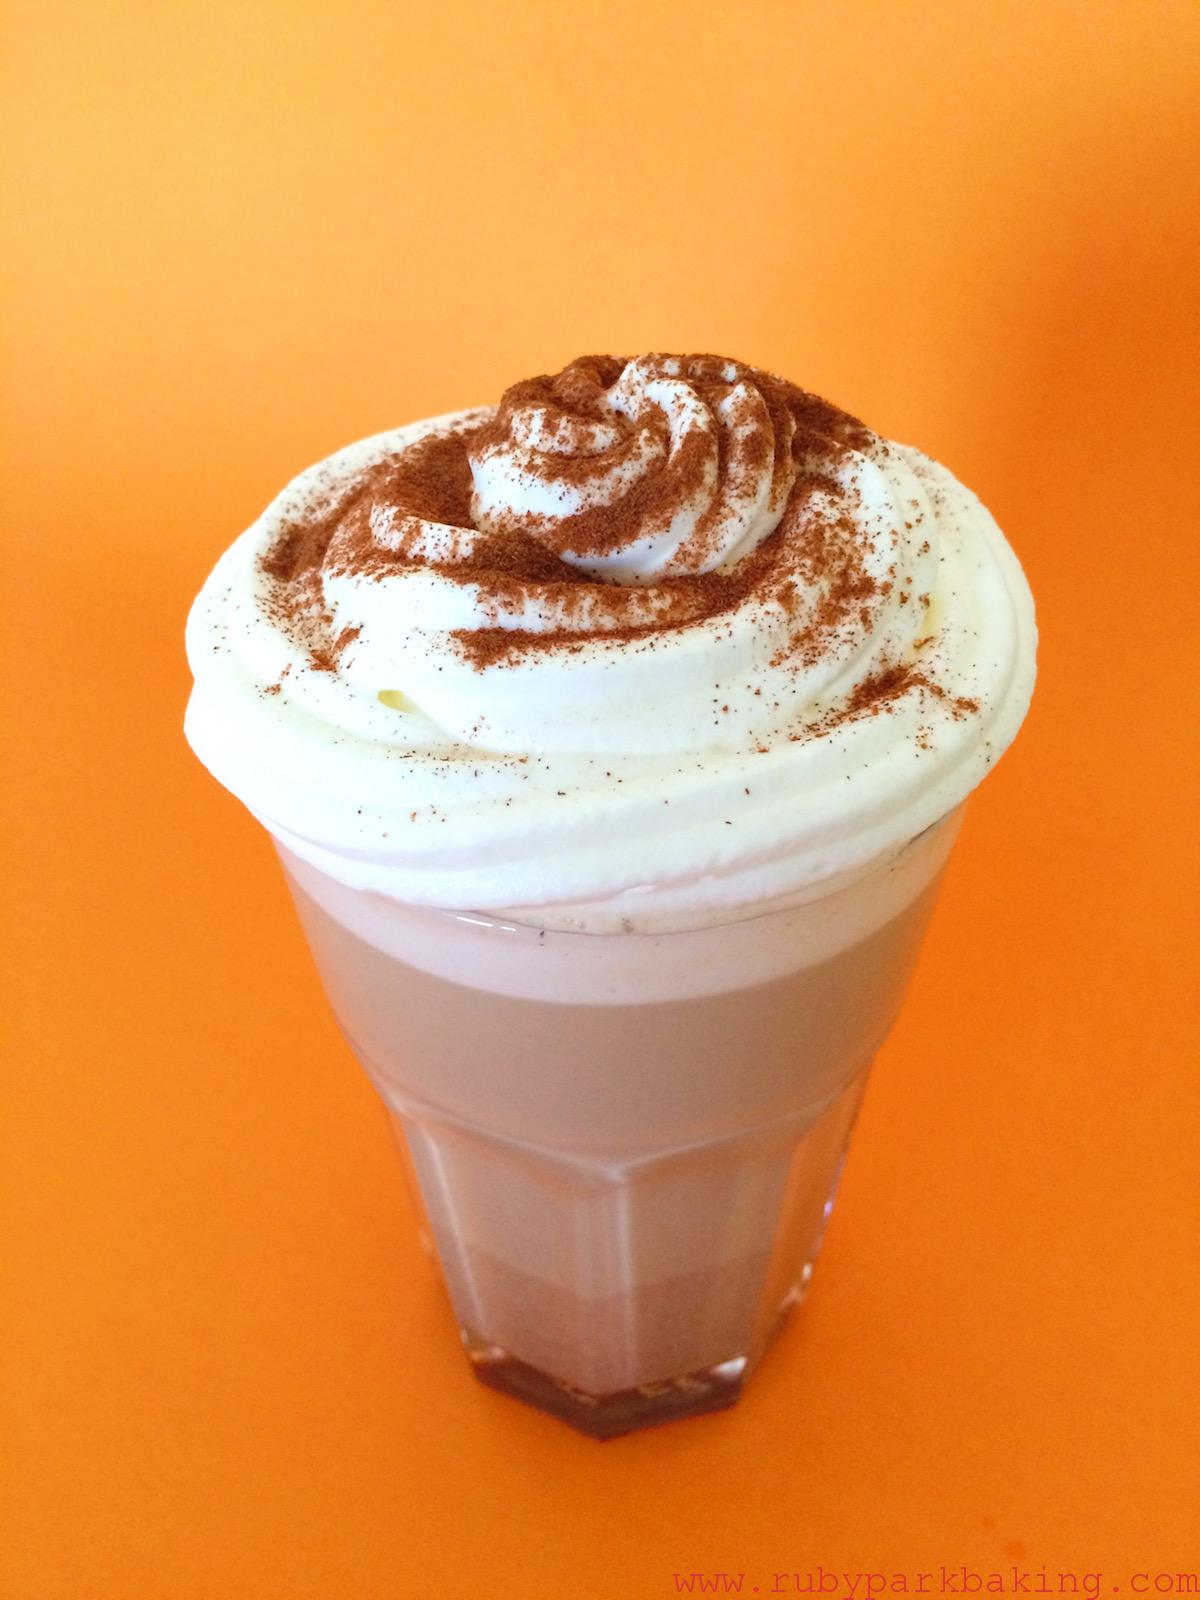 Homemade pumpkin spice latte on rubyparkbaking.com